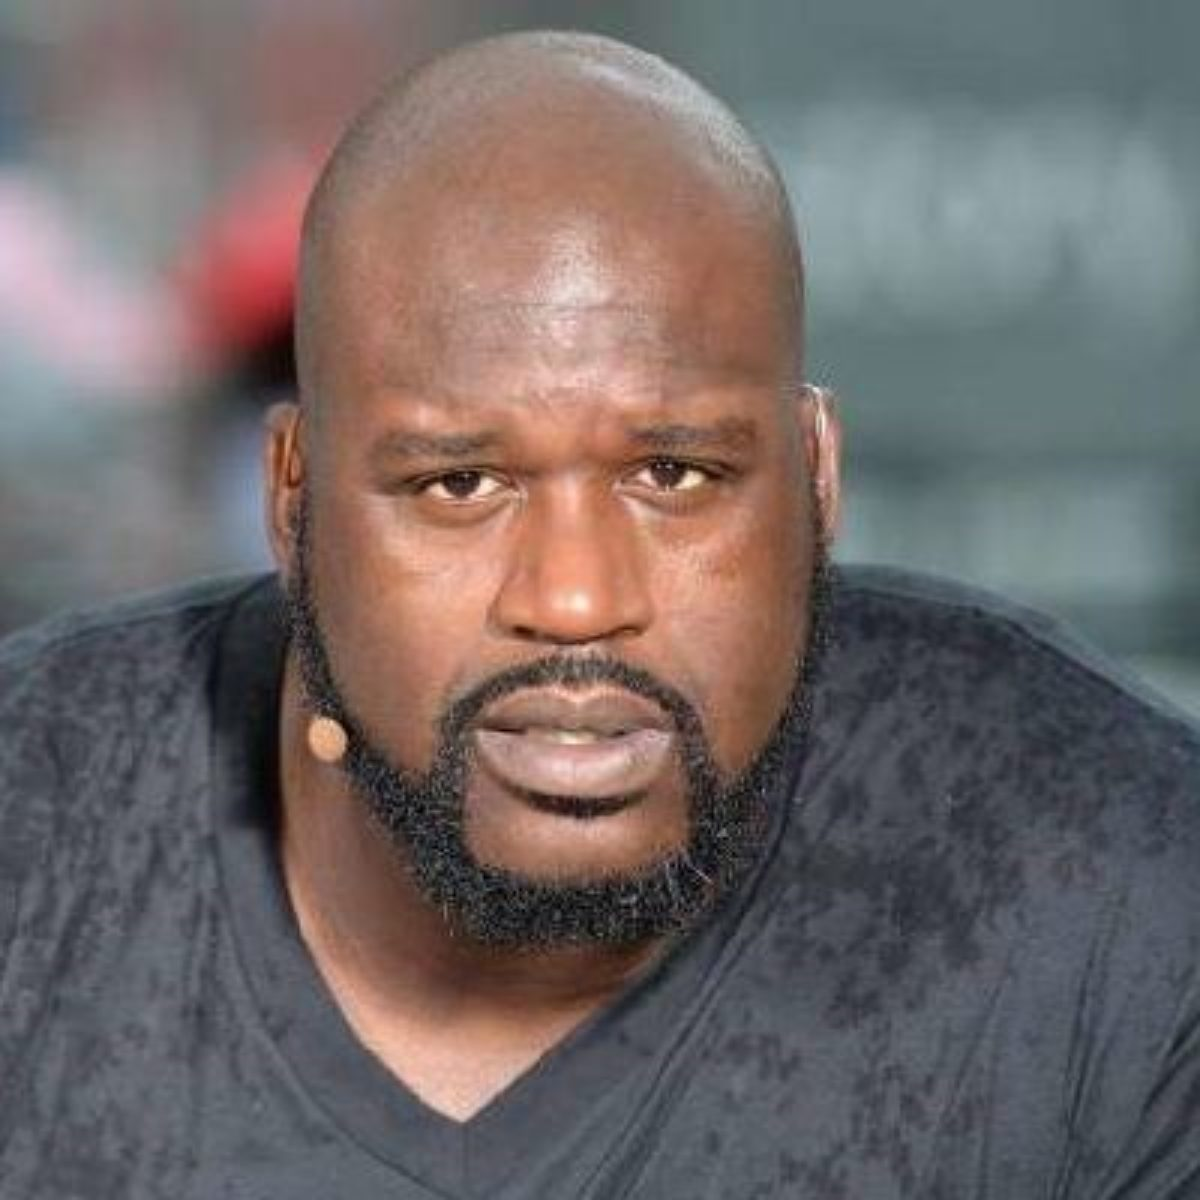 Shaquille O Neal Biography Age Net Worth Height In Relation Nationality Laticia rolle is a hardworking lady who earns cool cash from the bluhazl blog she runs. shaquille o neal biography age net